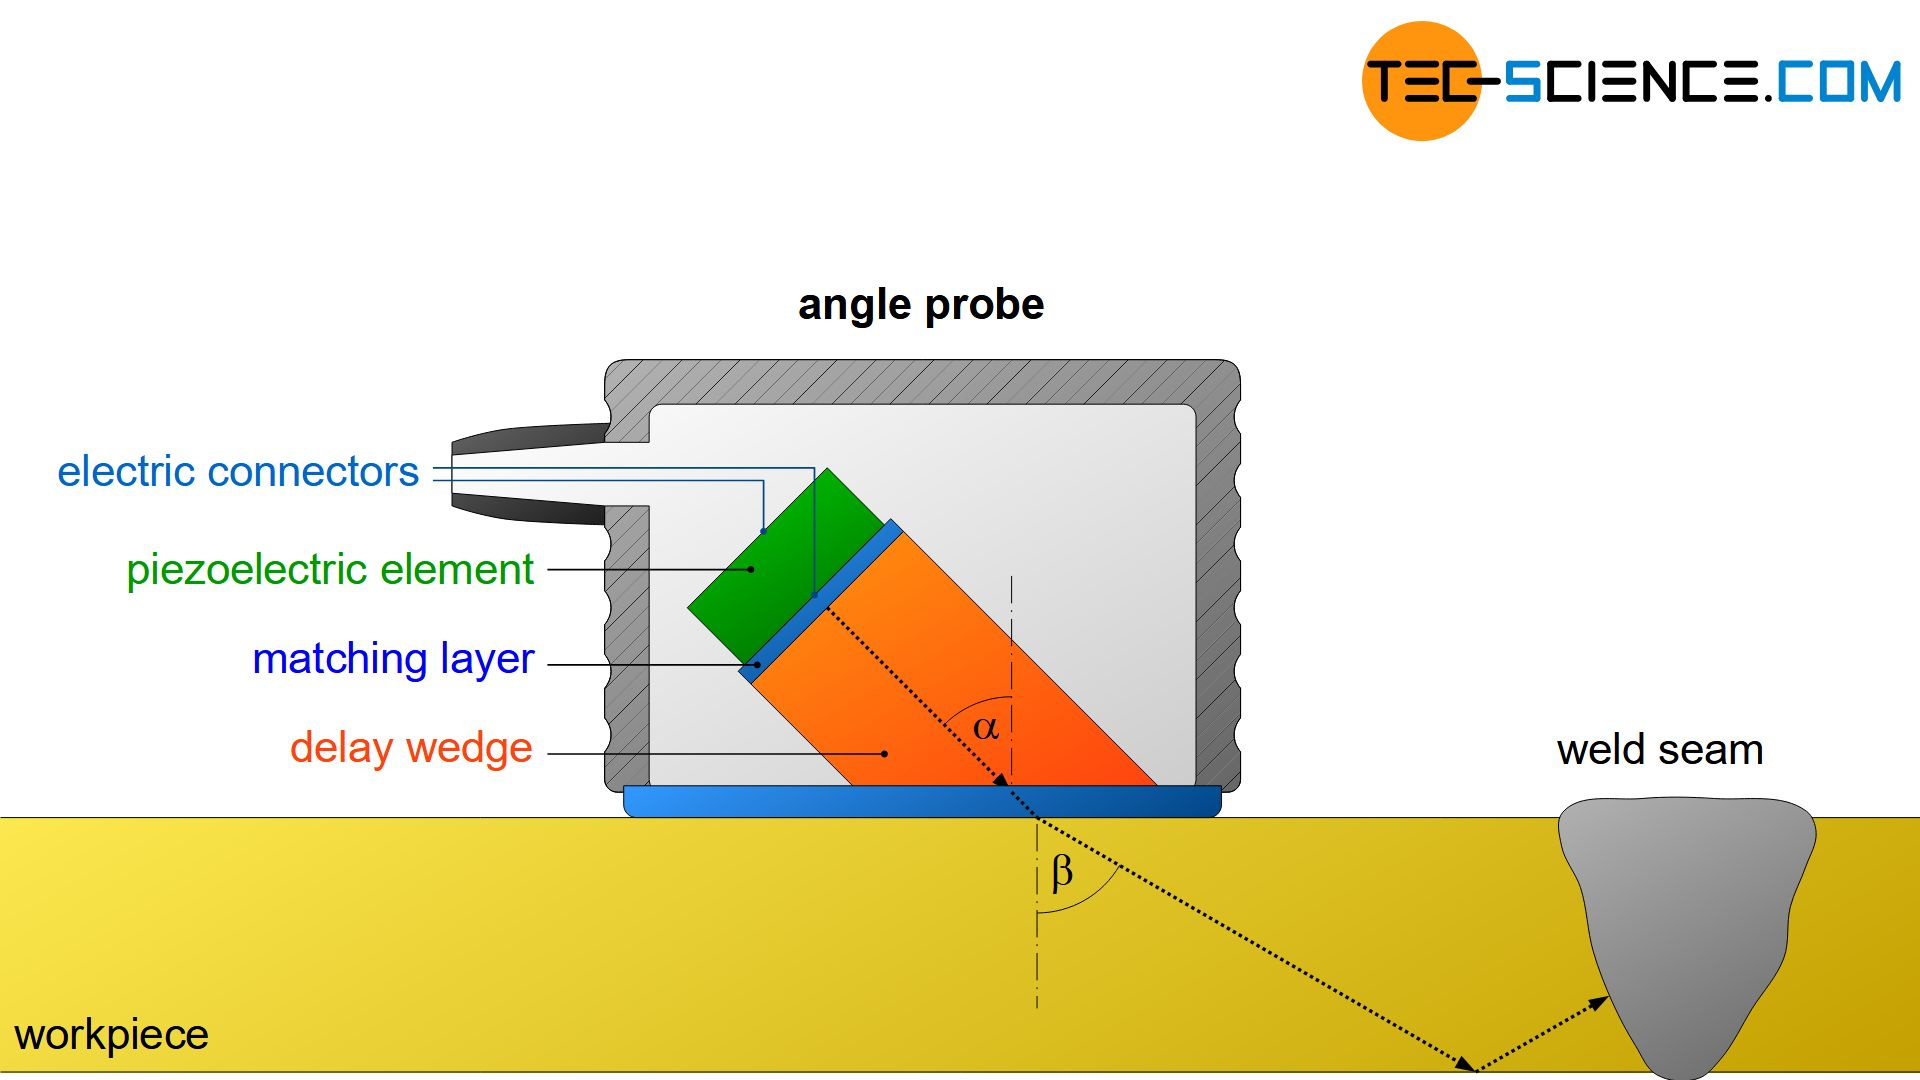 Components of an angle probe